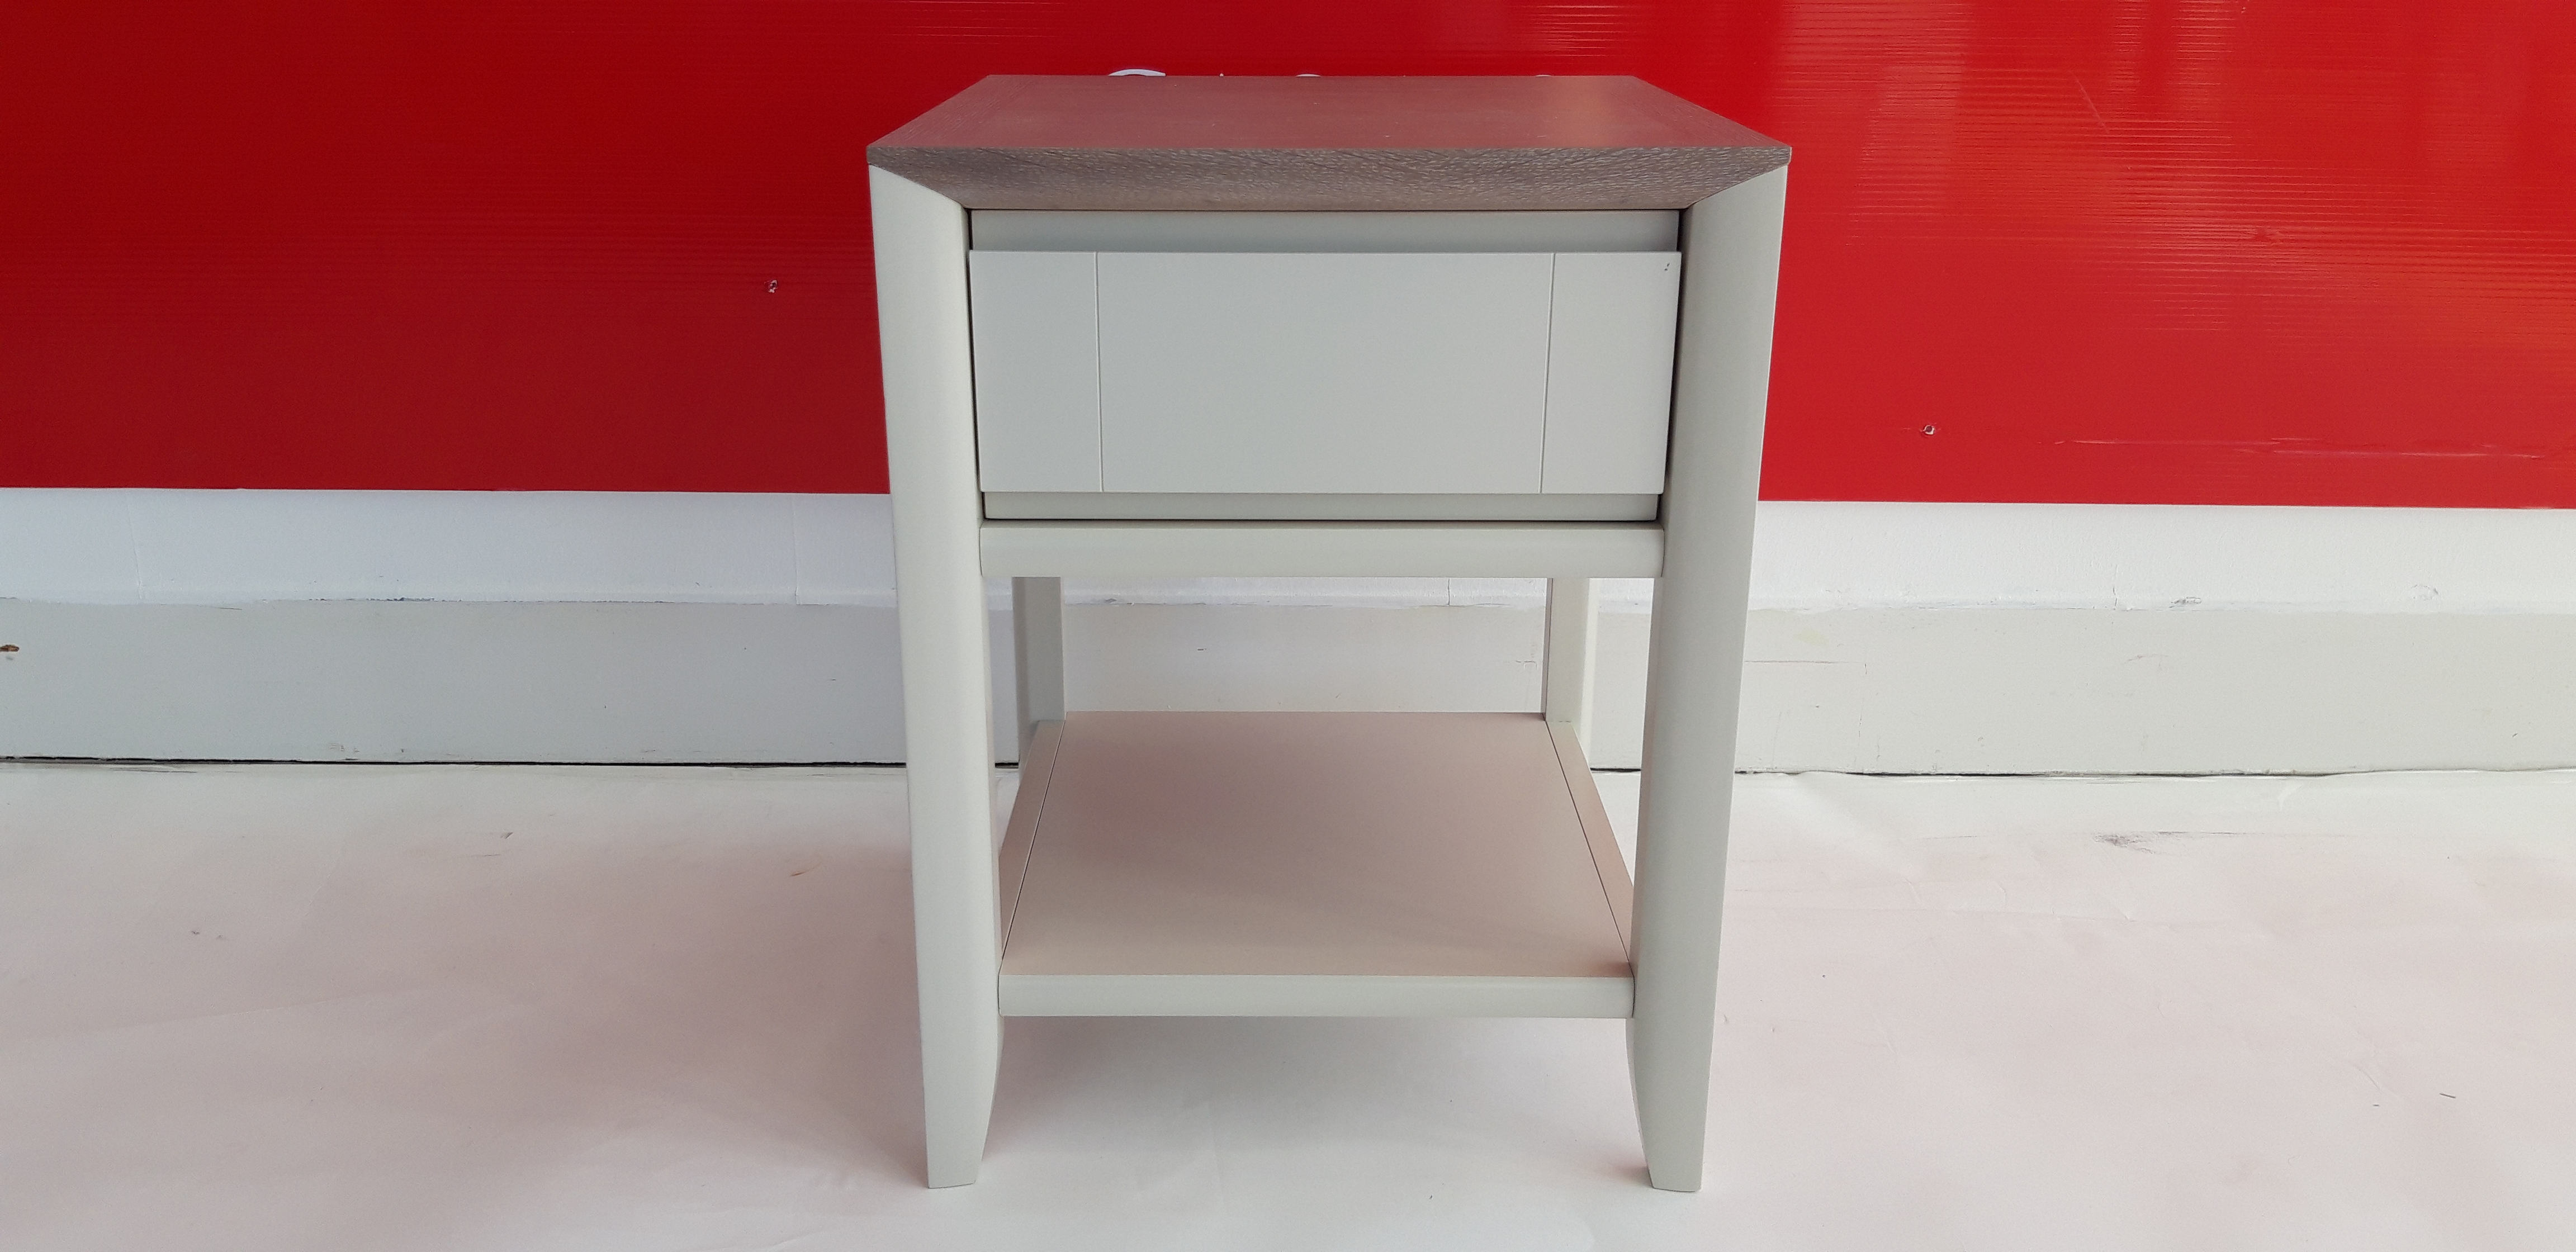 Oakley Grey Lamp Table With Drawer - OUTLET